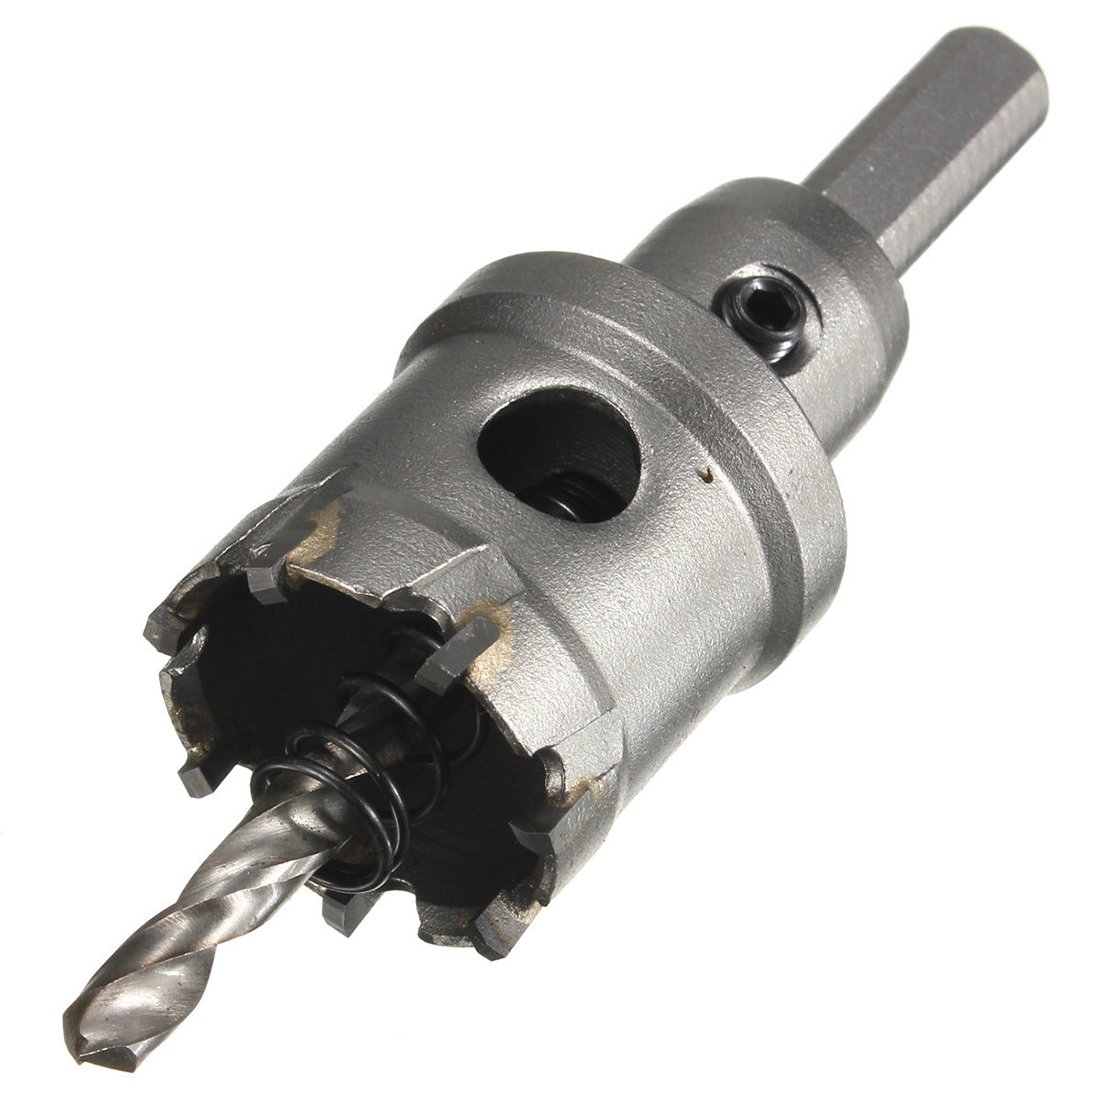 Carbide Tip Metal Cutter Stainless Steel HSS Drill Bit Hole Saw Holesaw Size:32mm